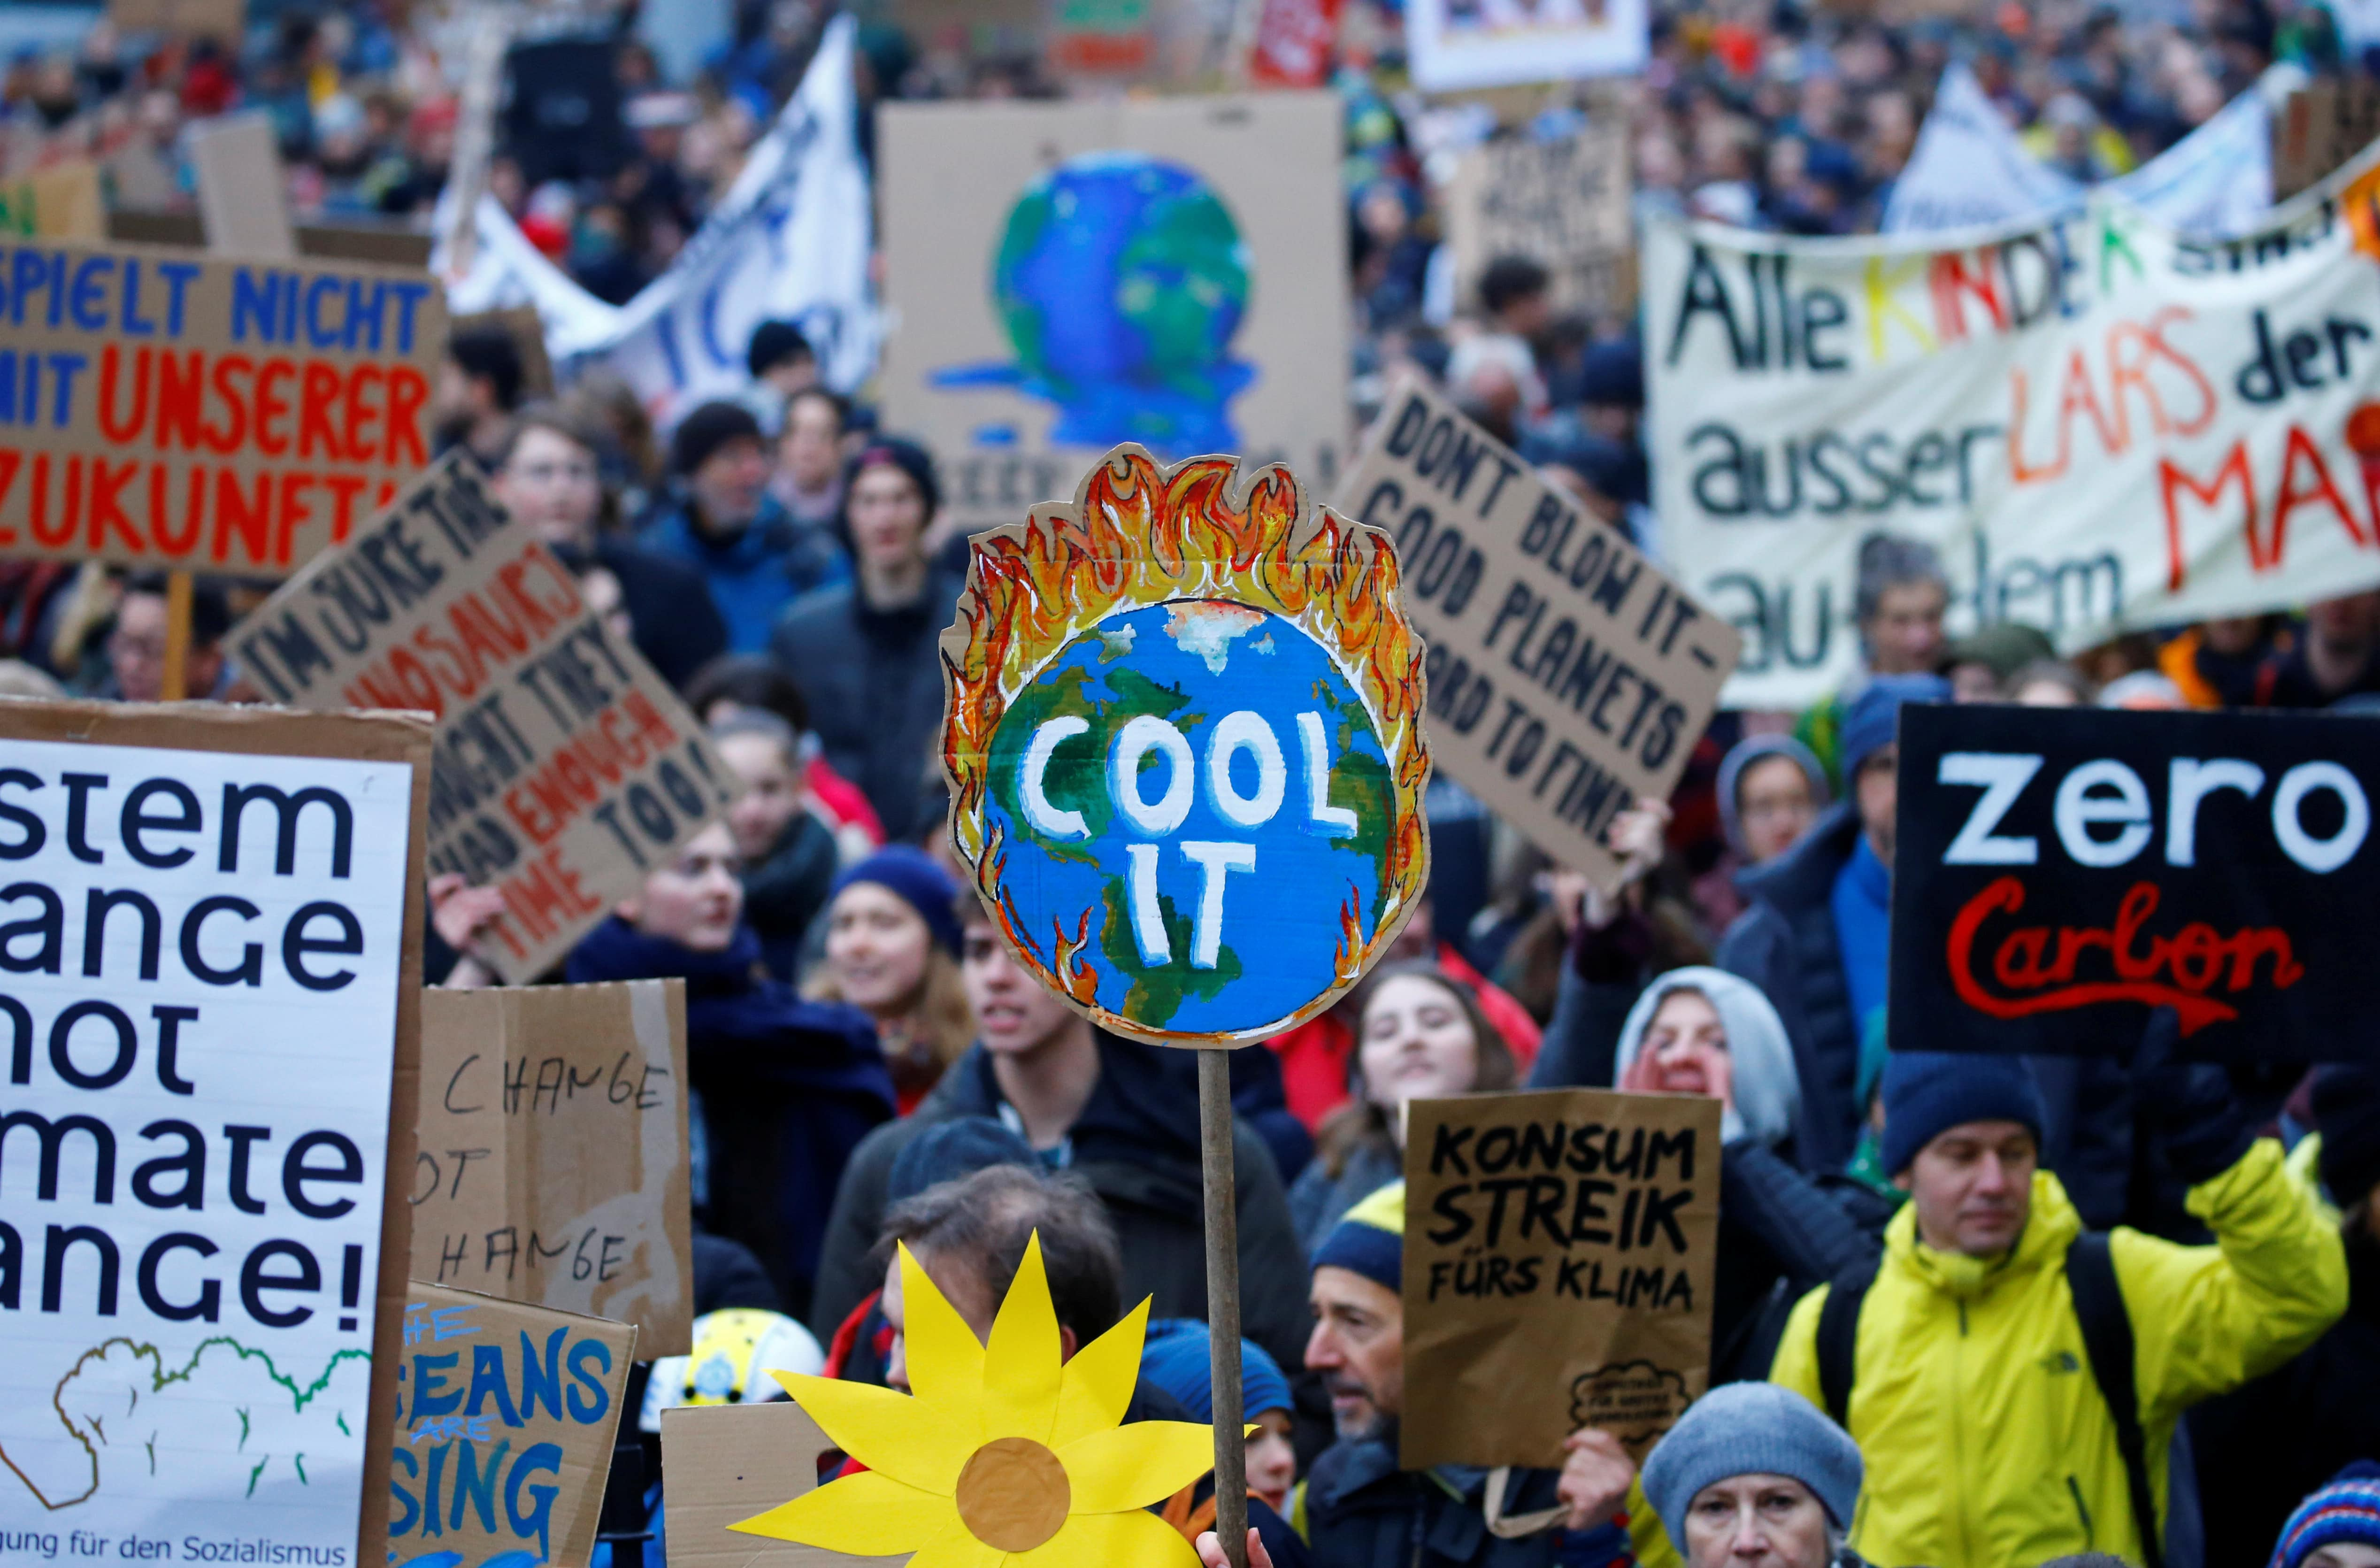 """a large crowd of people marching, a sign that read """"cool it"""" is the most prominent"""